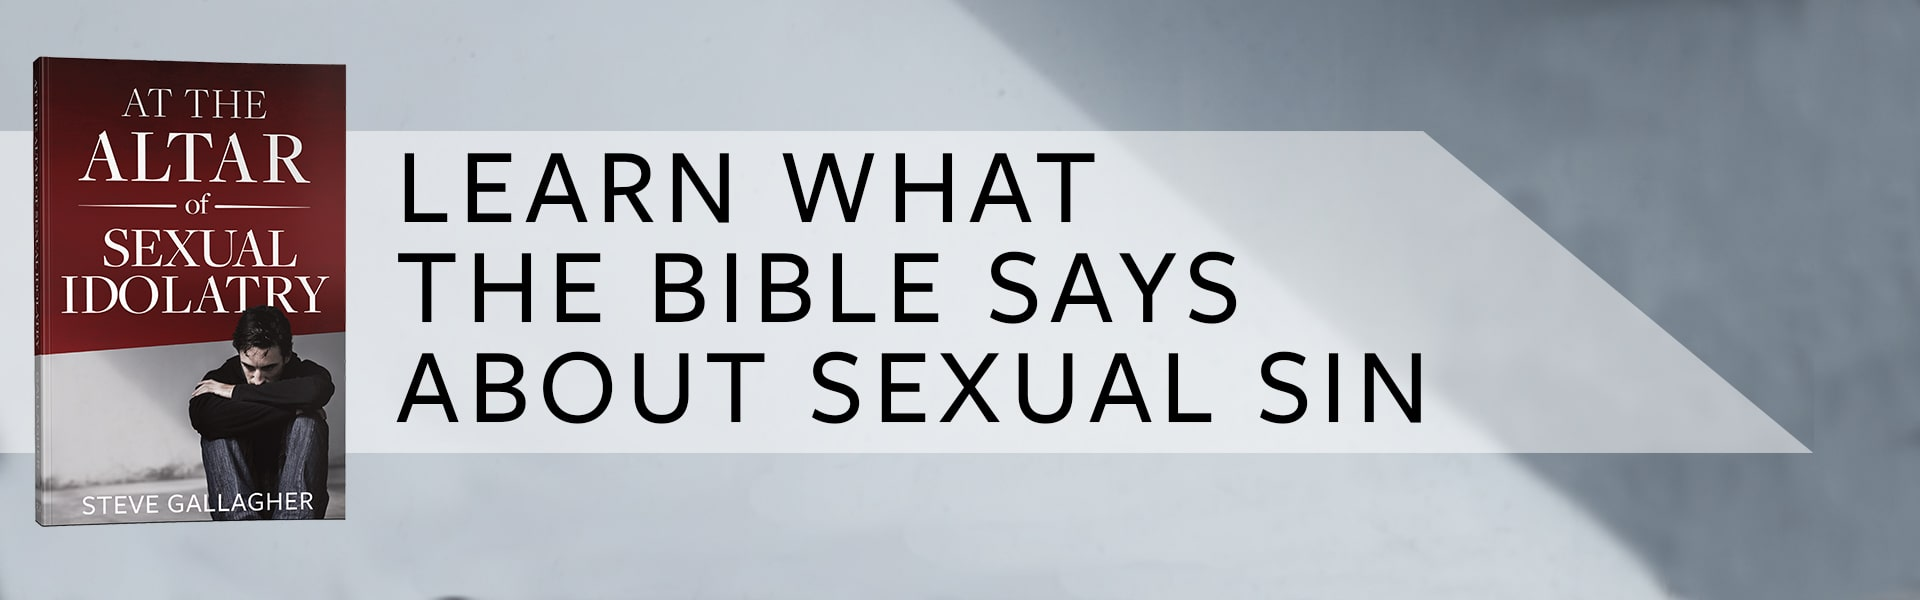 At the Altar of Sexual Idolatry: Learn what the Bible says about sexual sin